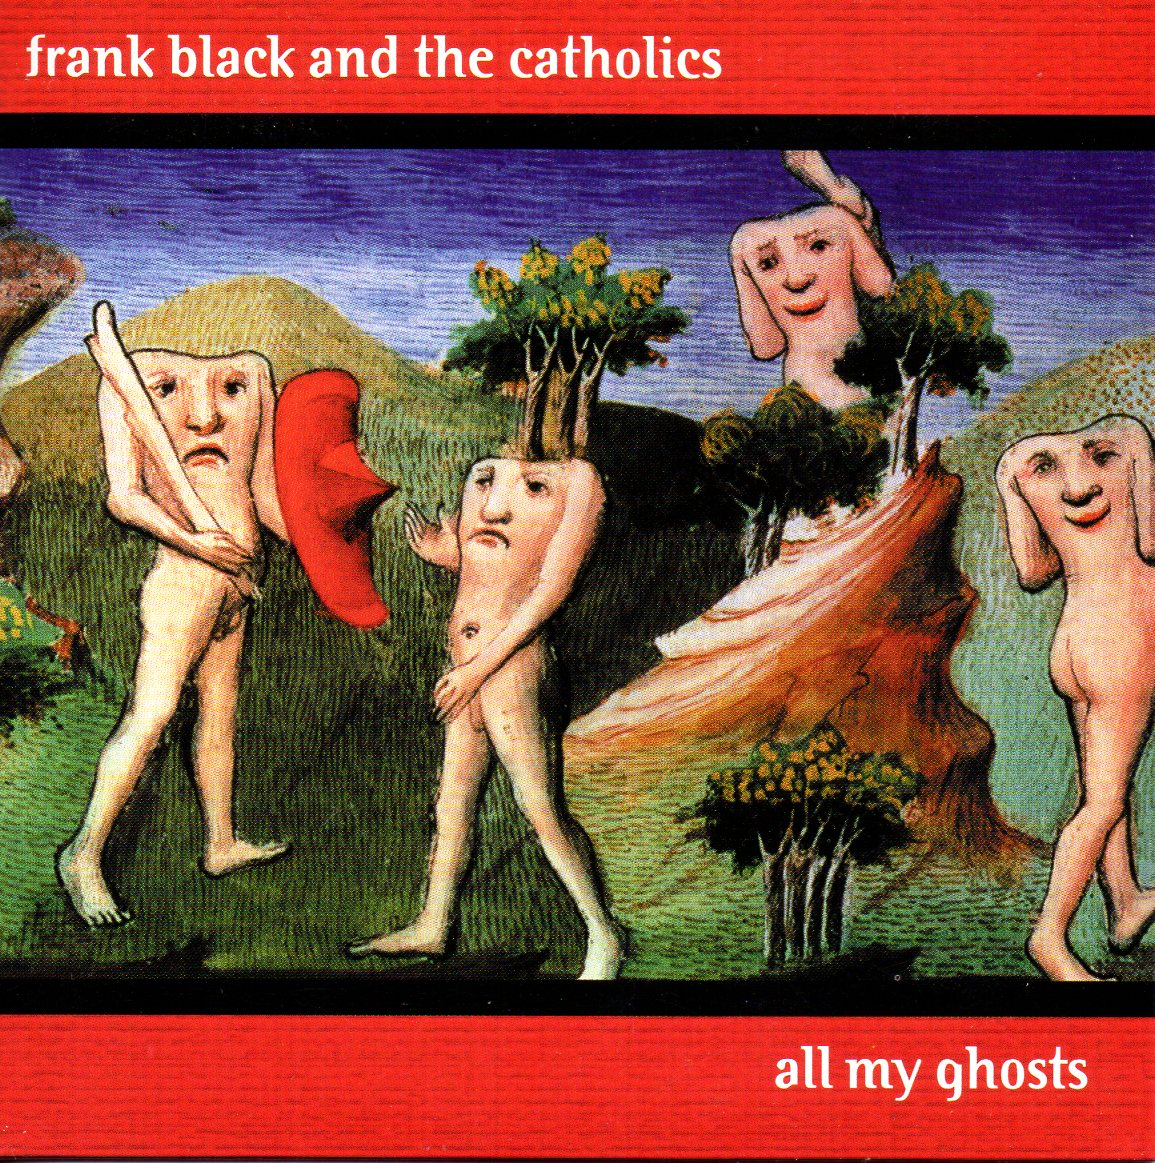 FRANK BLACK & THE CATHOLICS - All my ghosts 2-Track CARD SLEEVE - CD single